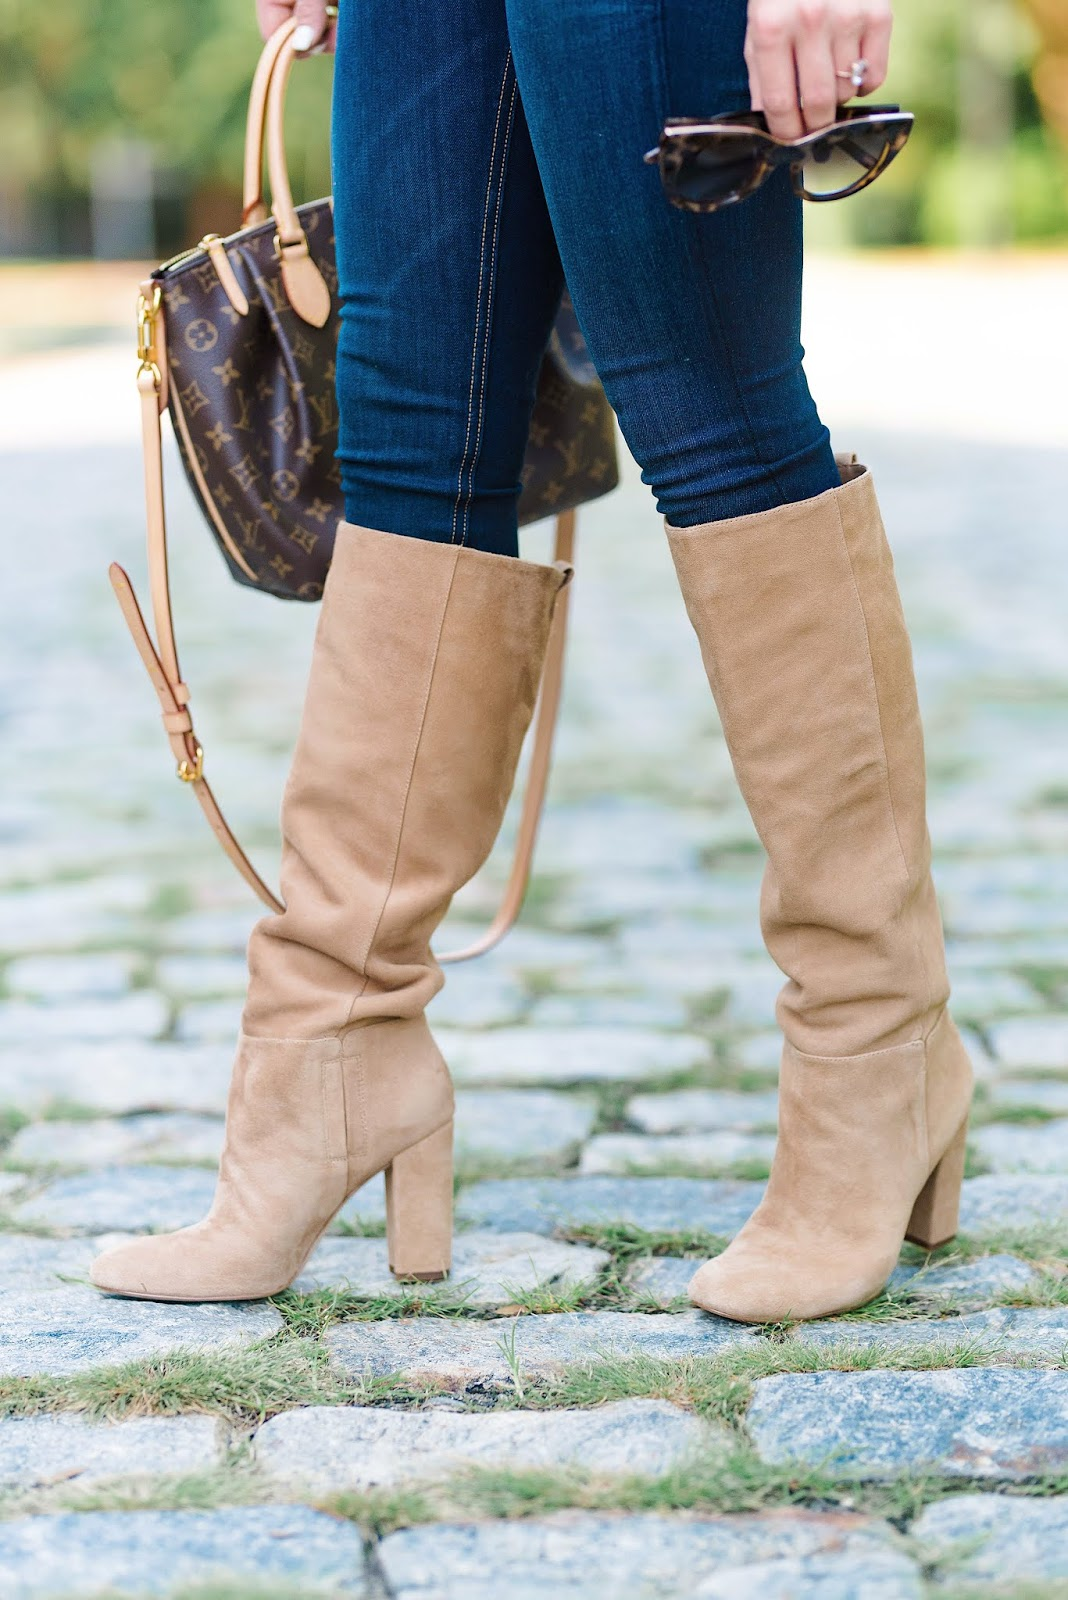 NSale Sam Edelman Caprice Knee High Boots - Something Delightful Blog